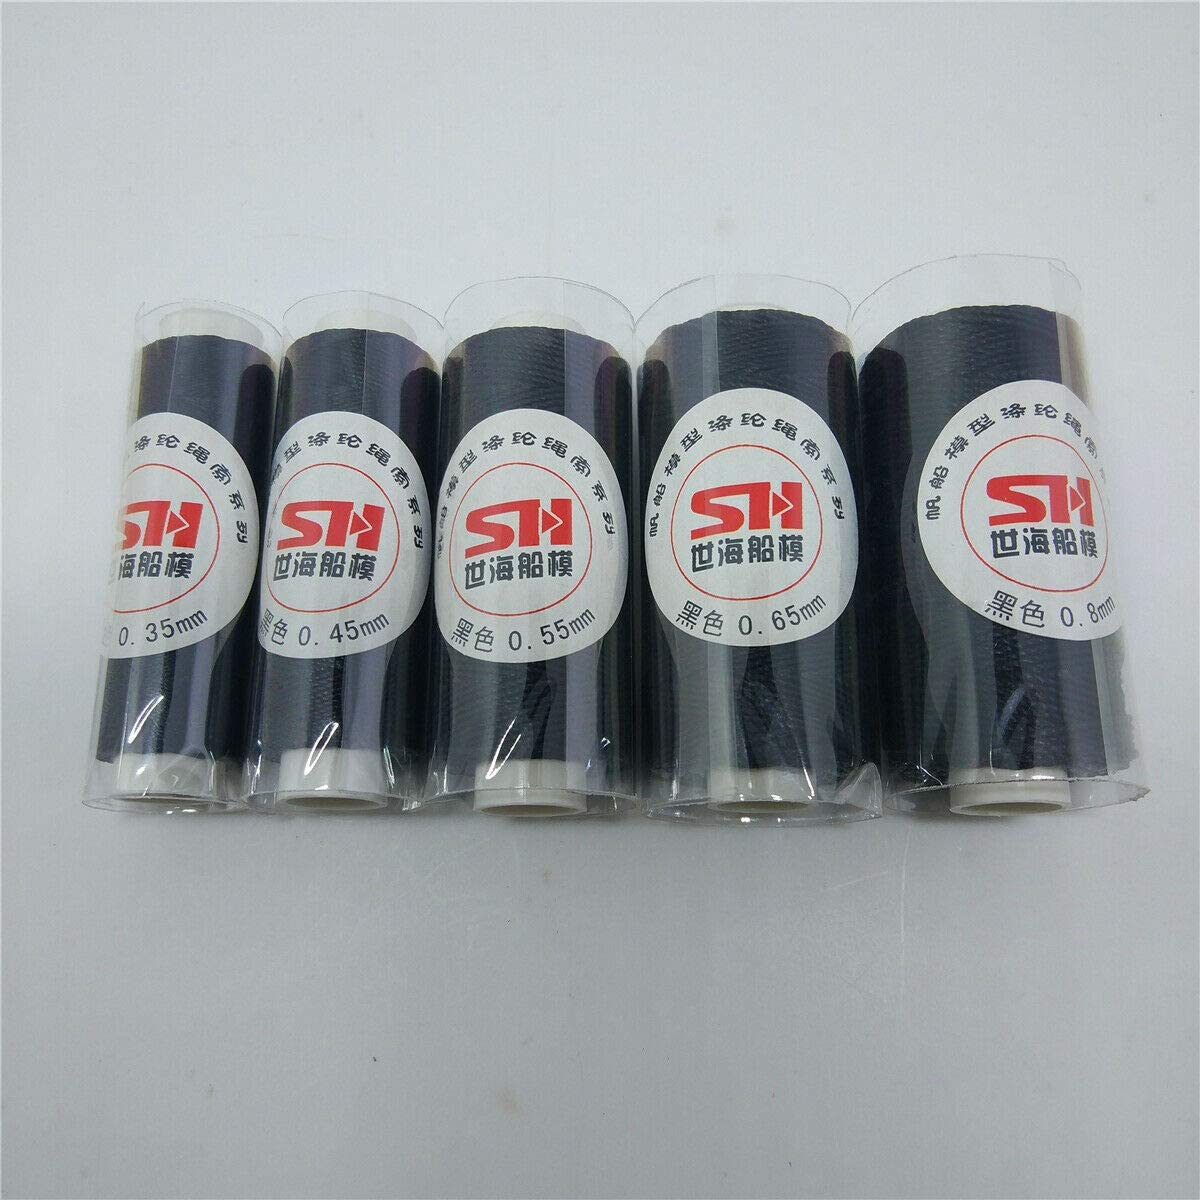 Rigging Threads for model ship making Choice of Colour//Size 50M Black,0.65mm